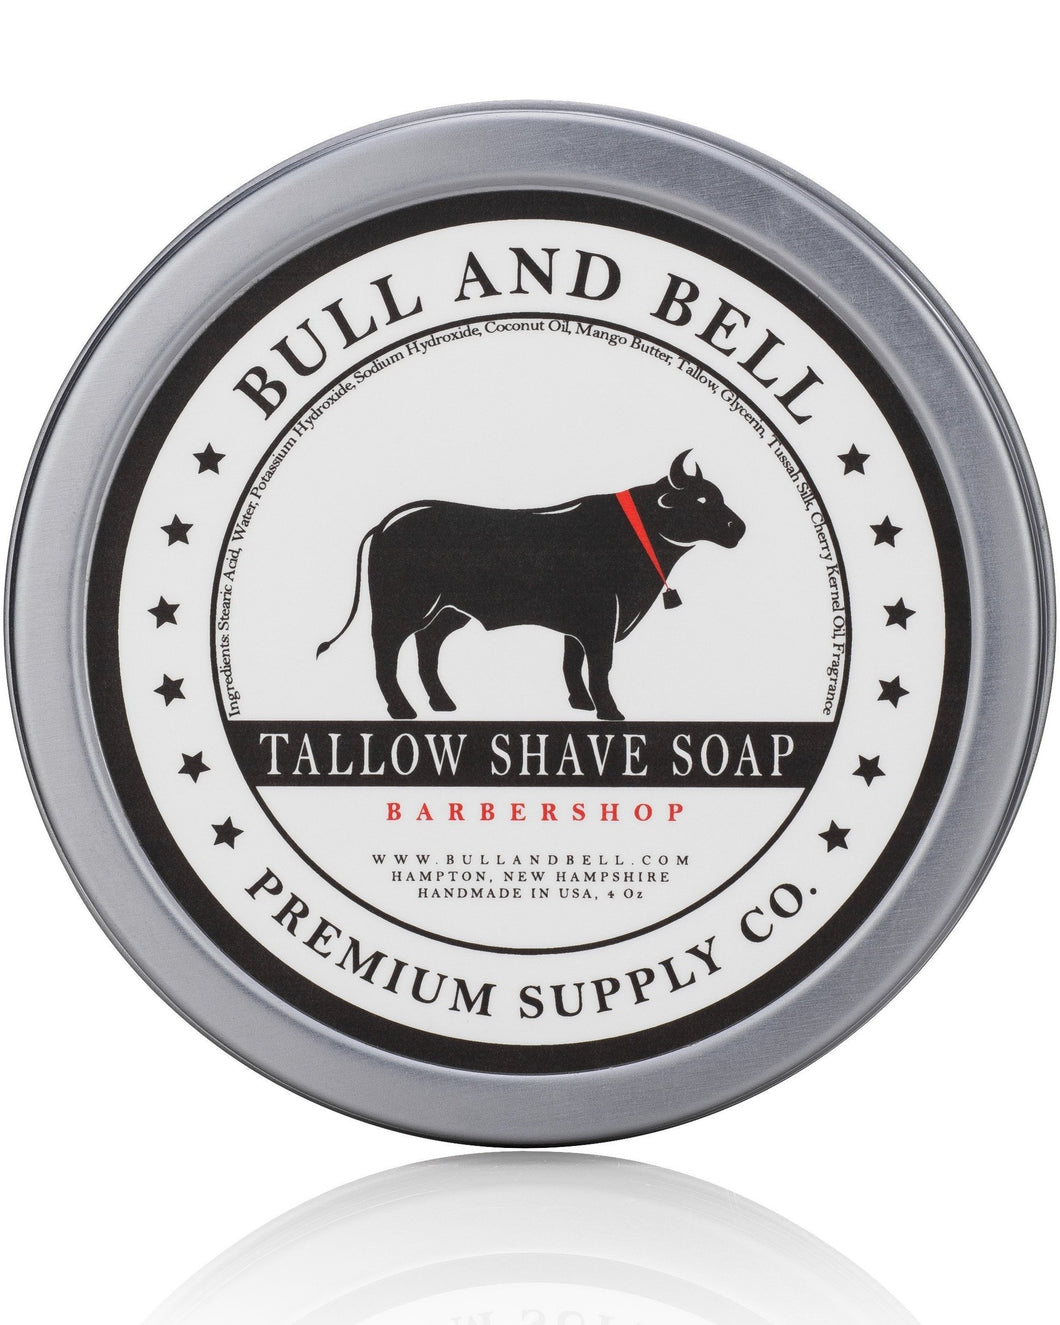 Barbershop Scented Tallow Shaving Soap